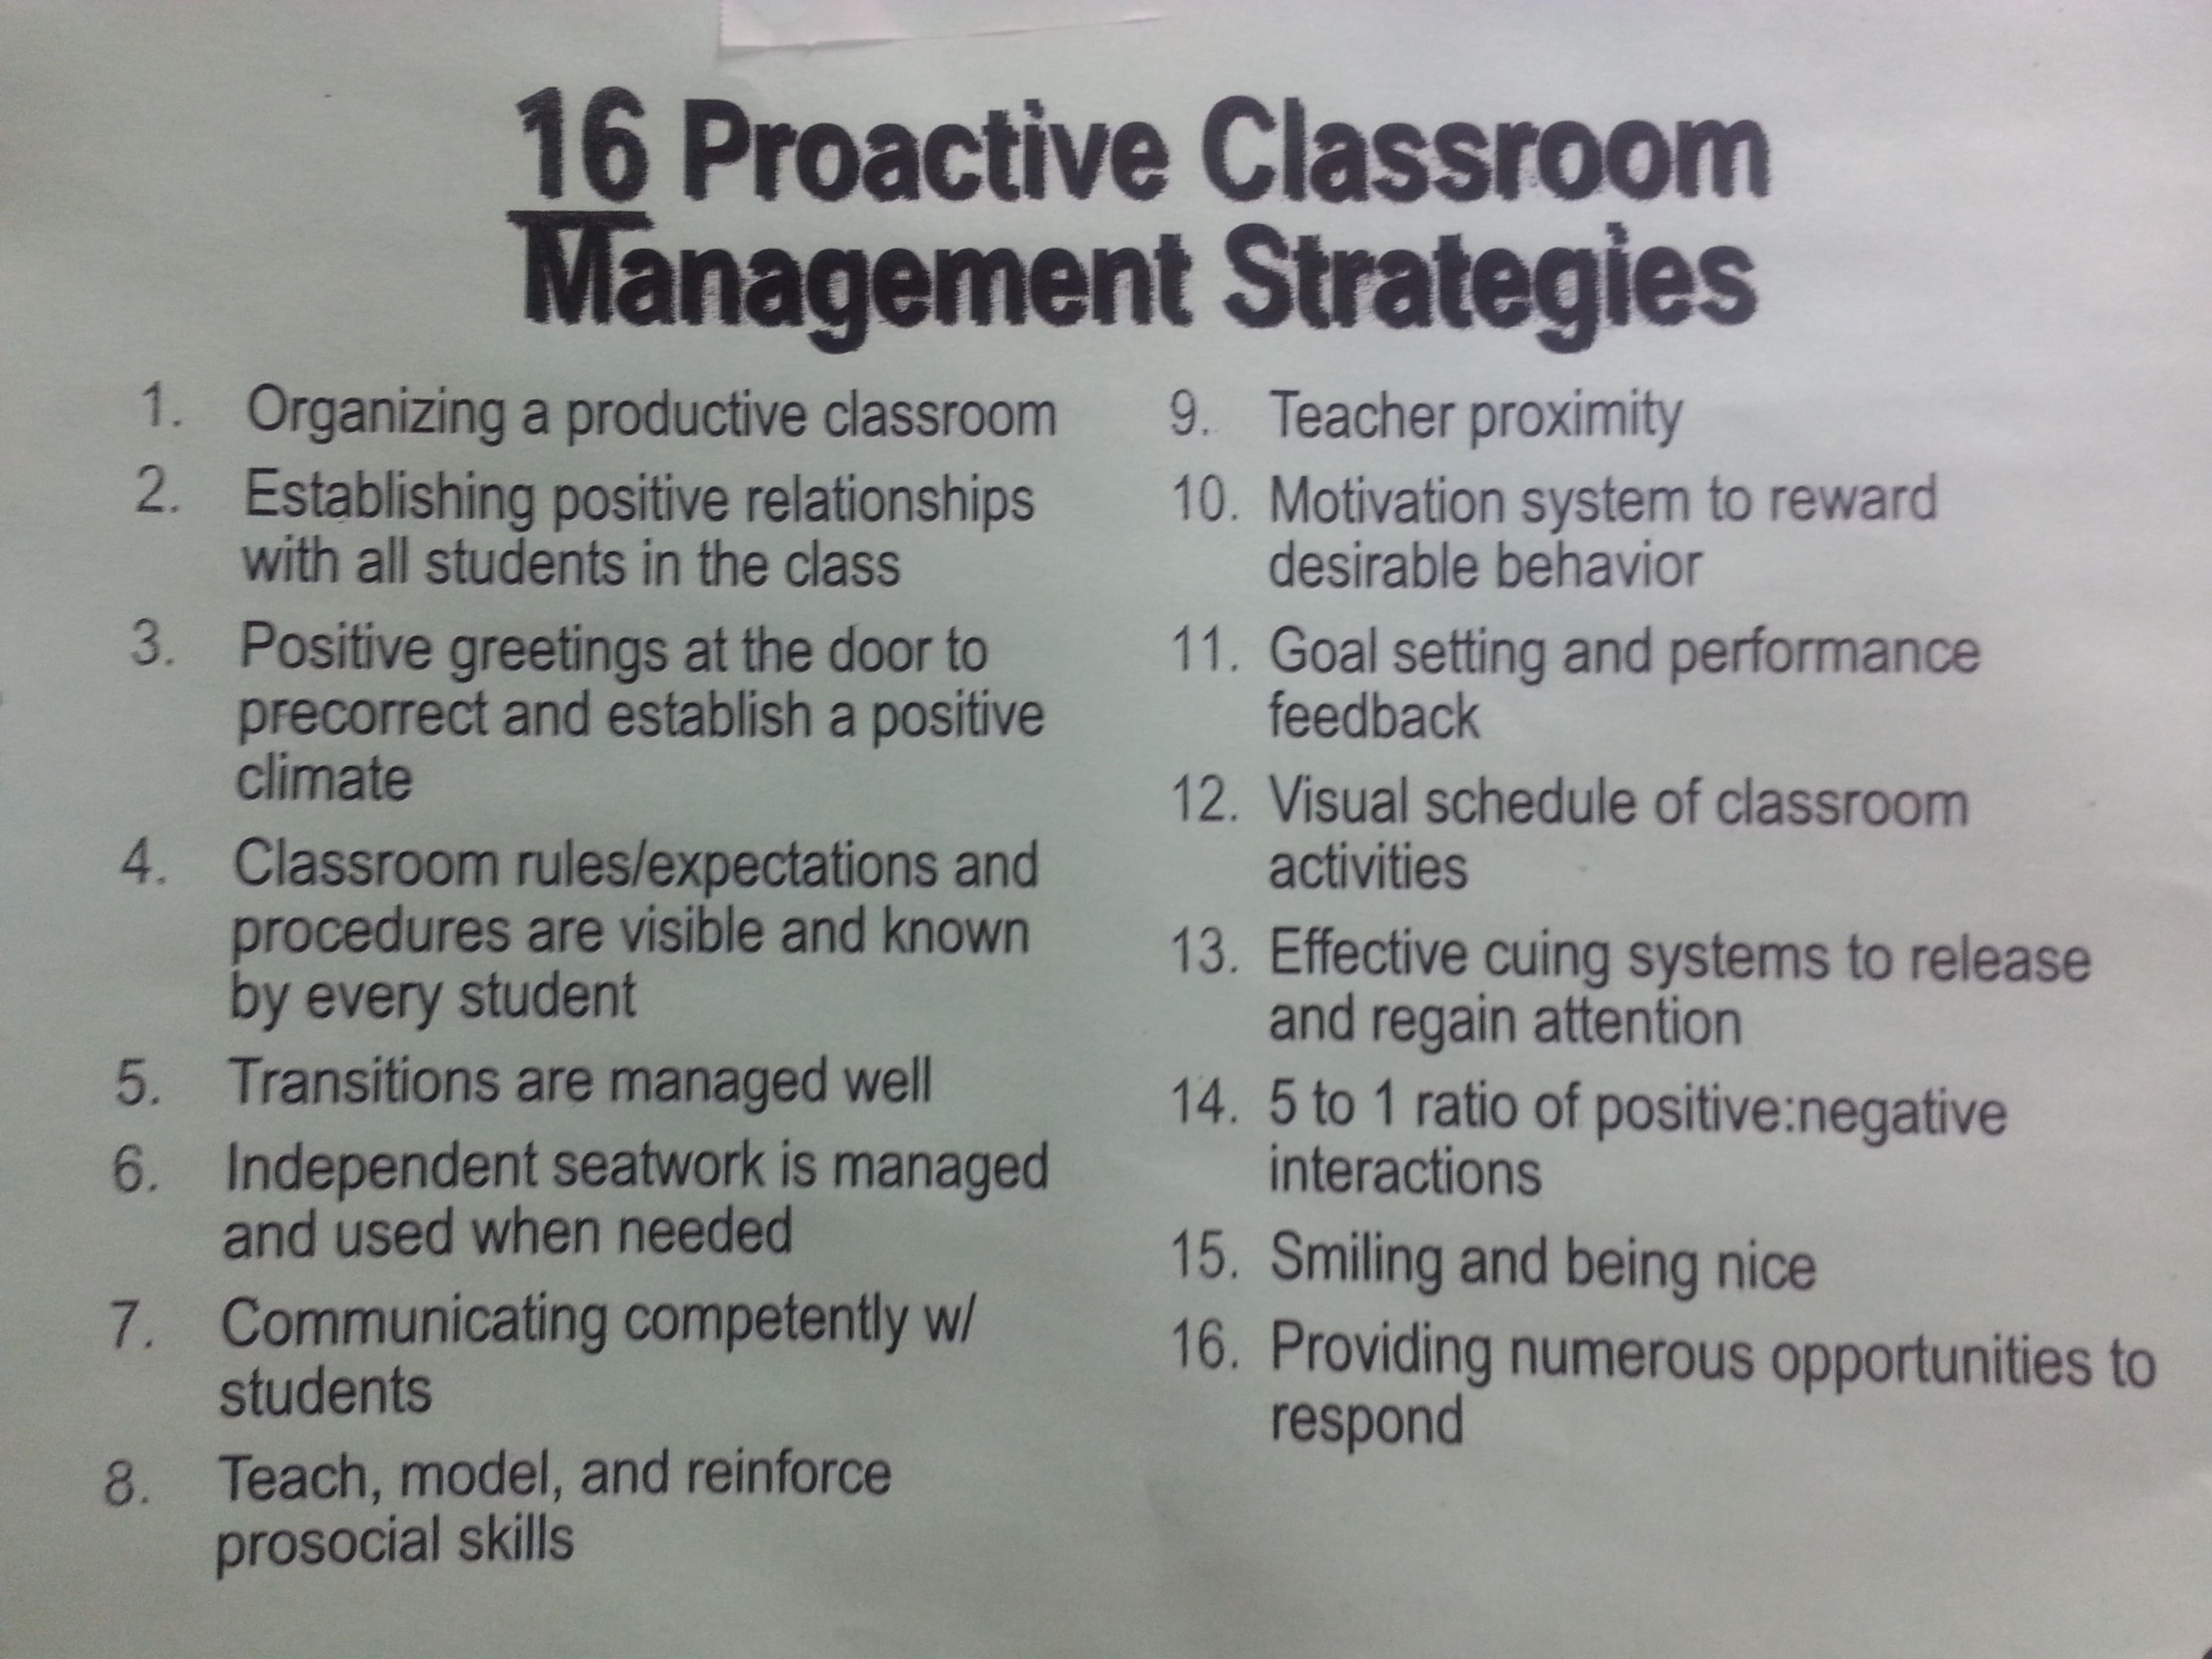 Proactive Classroom Management Strategies  Basic But A Good